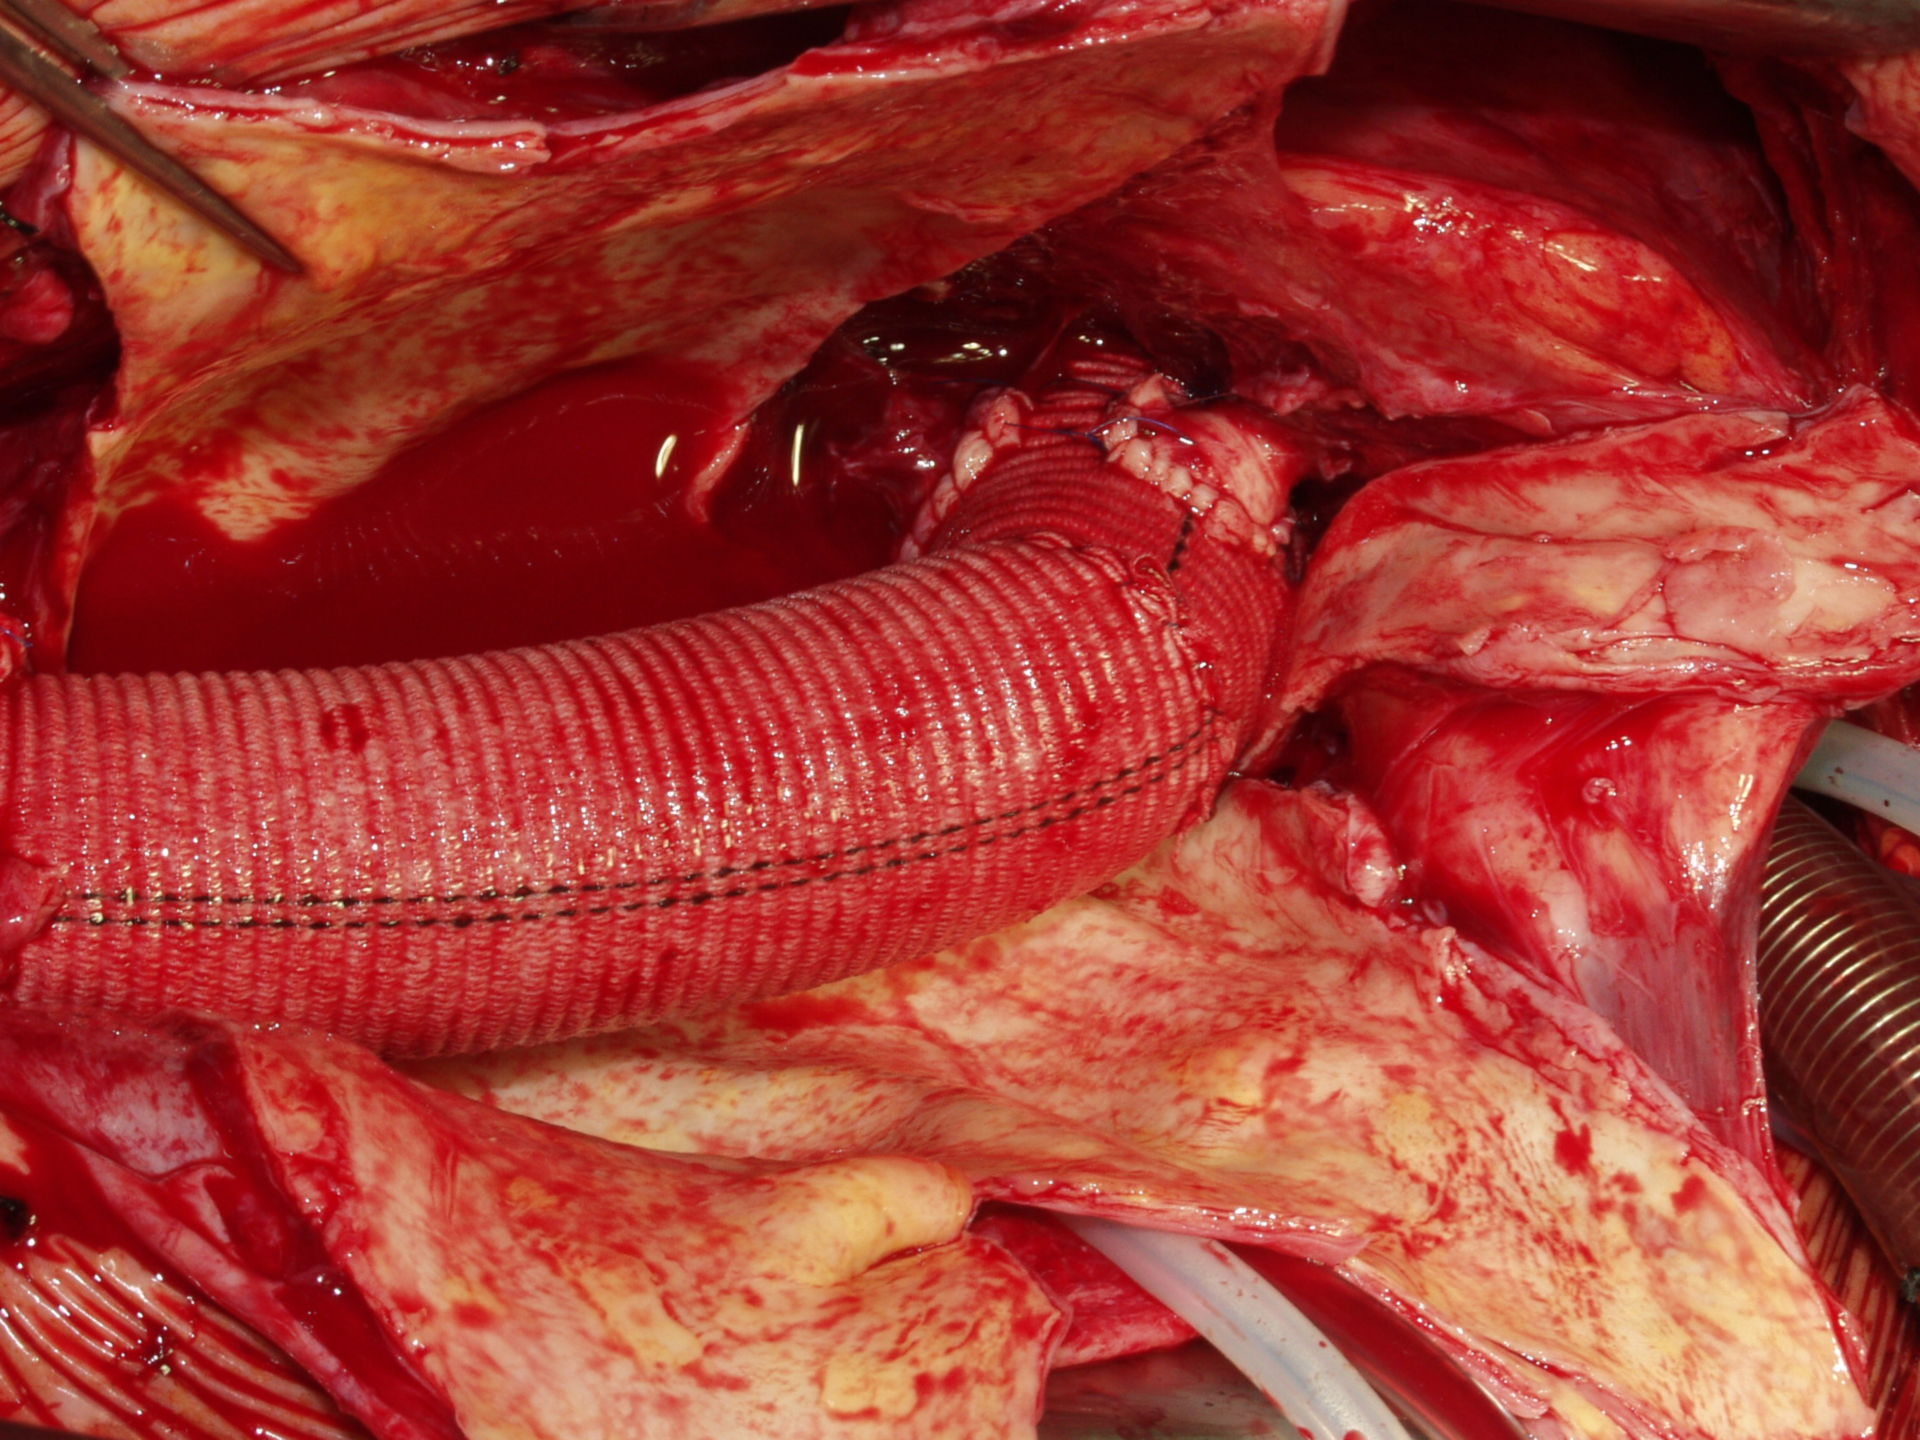 Reconstruction of aortic valve after 'David' (fig. 1e)